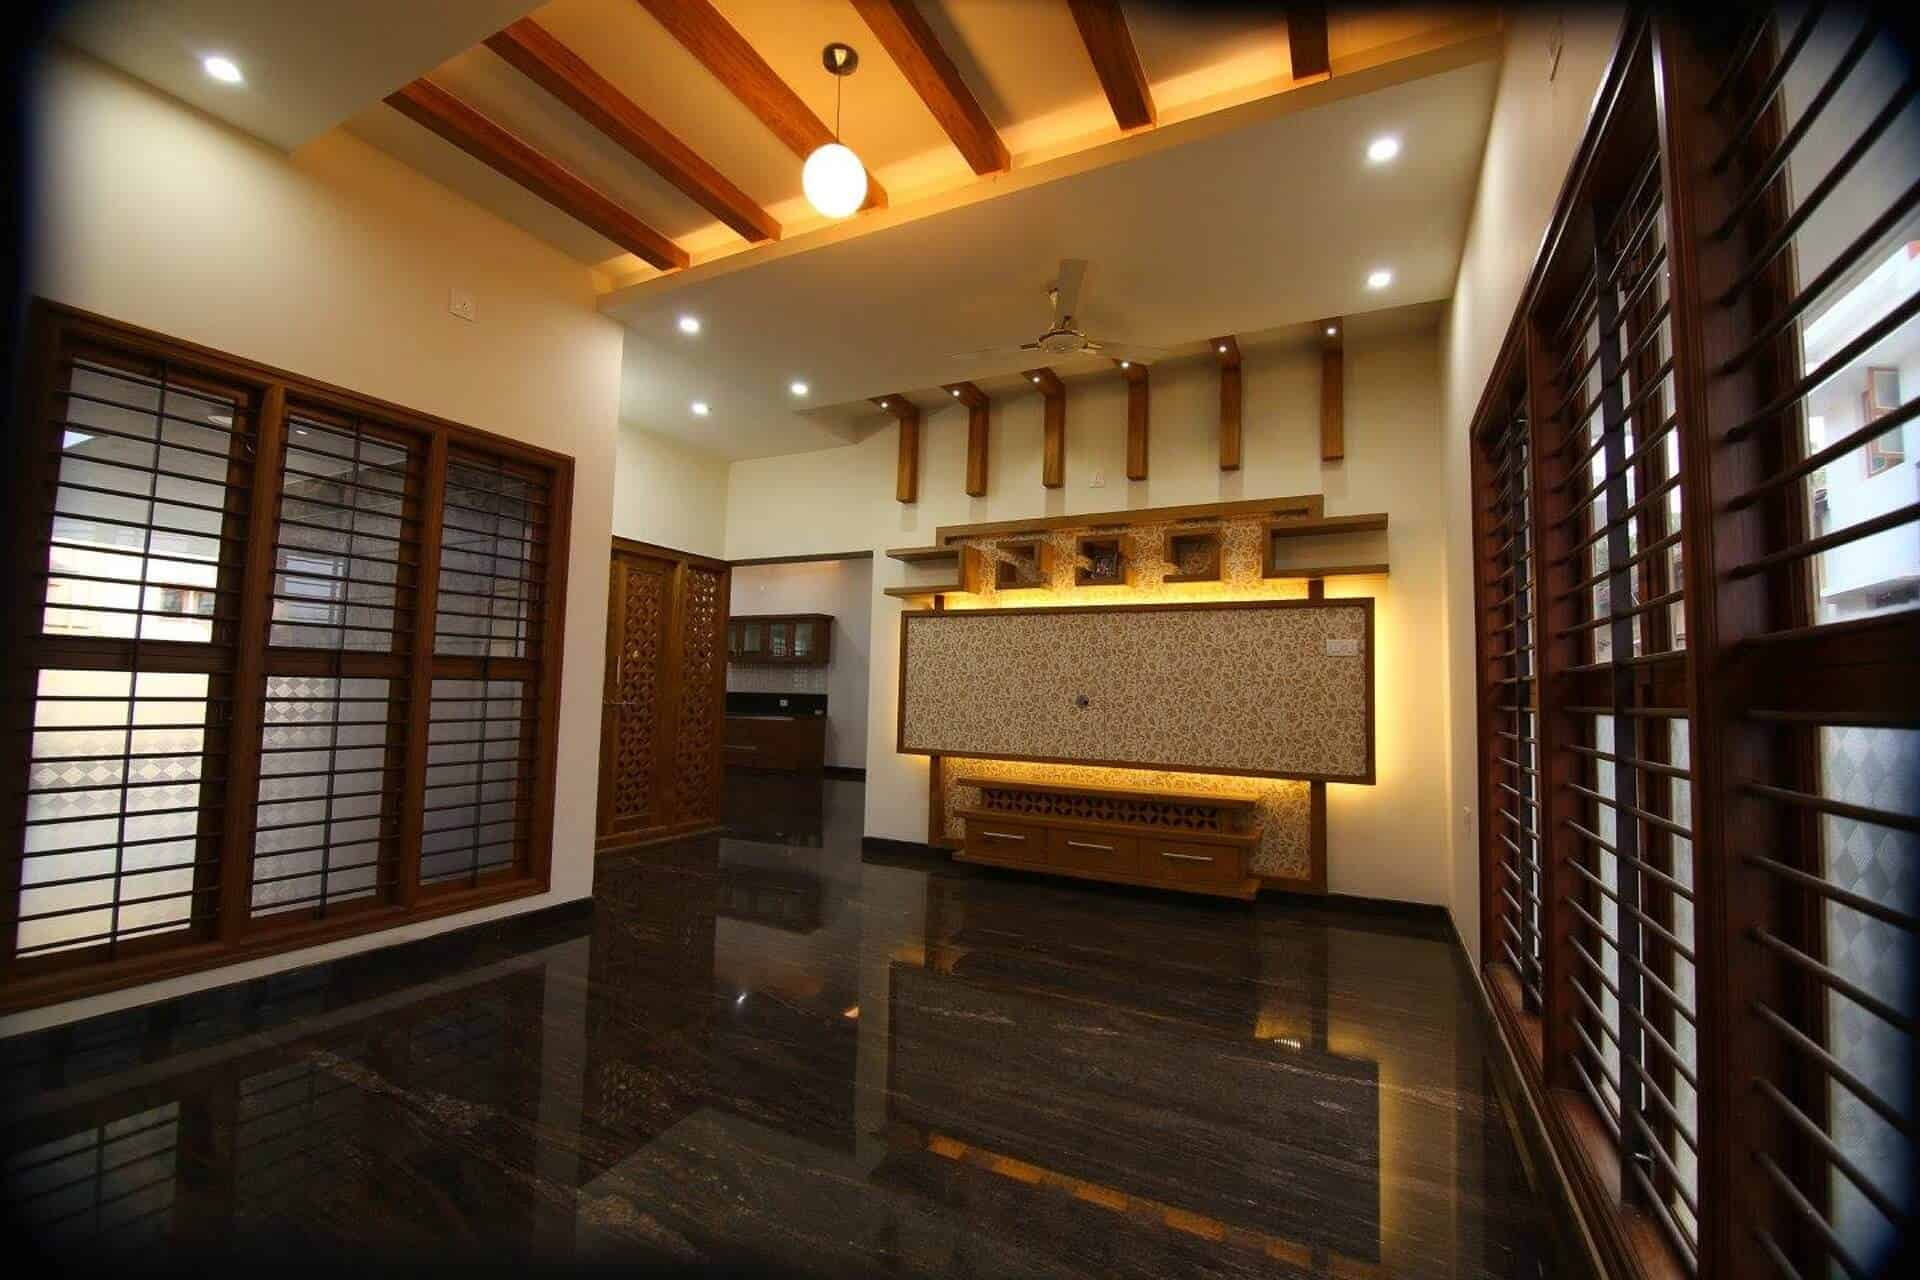 Mr. Rajesh Kamath Residence at Udupi